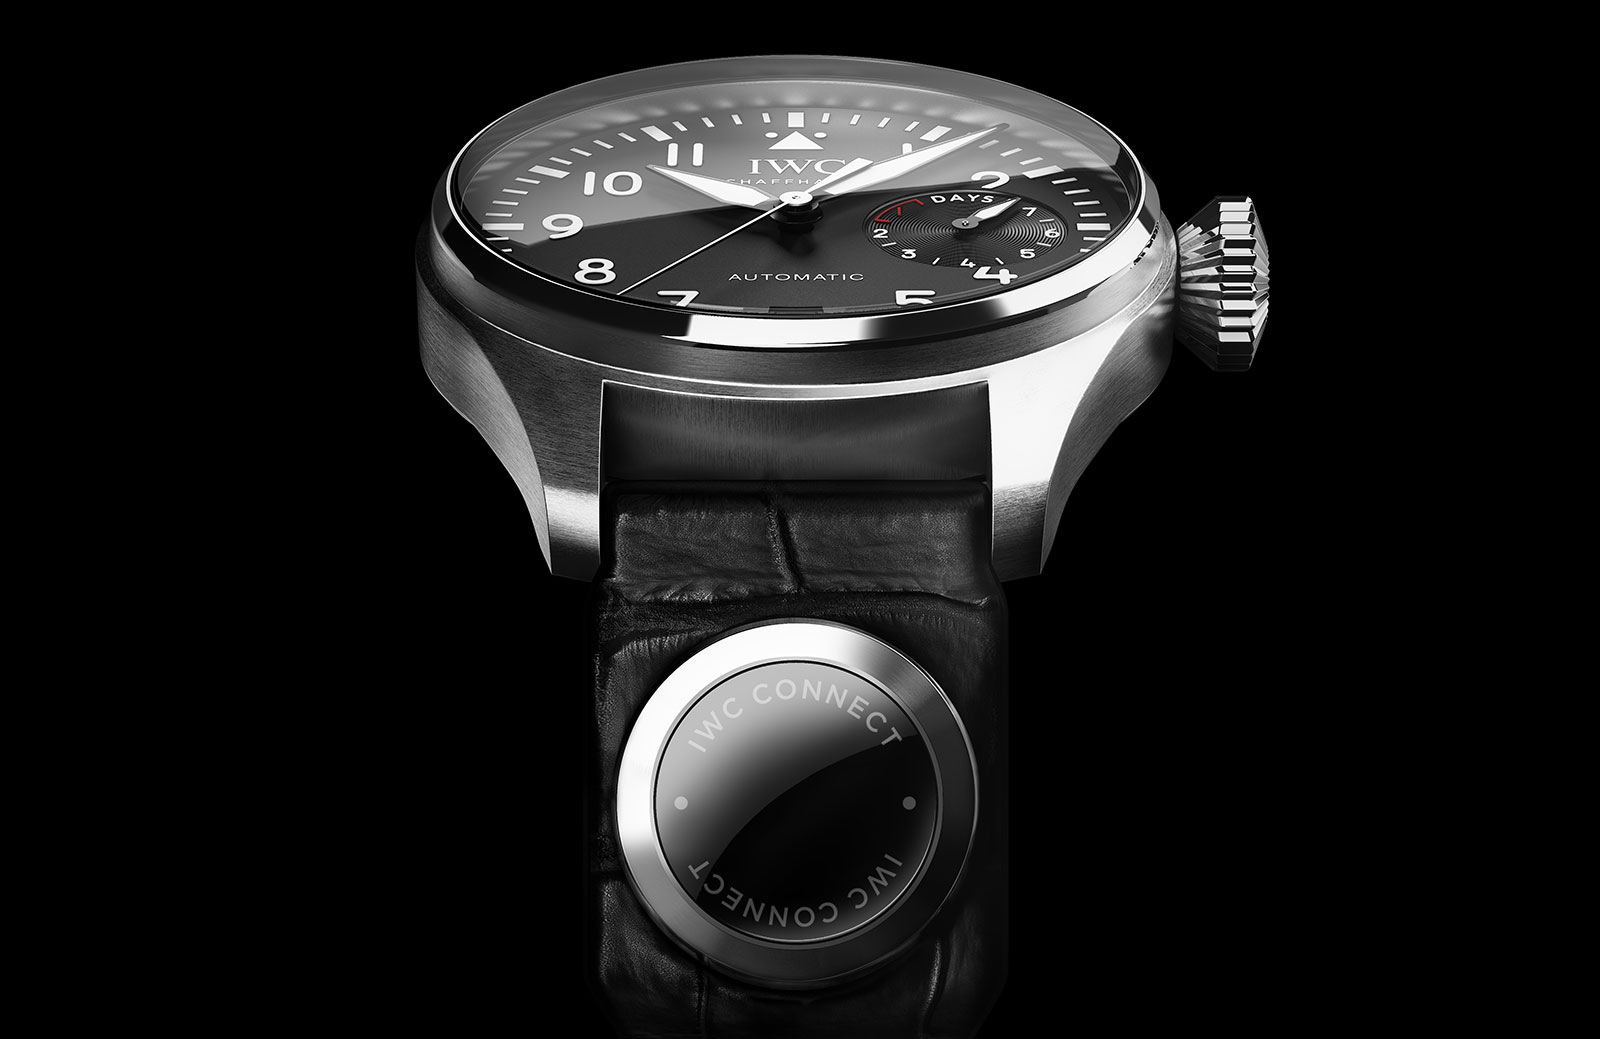 IWC: Smart on the band